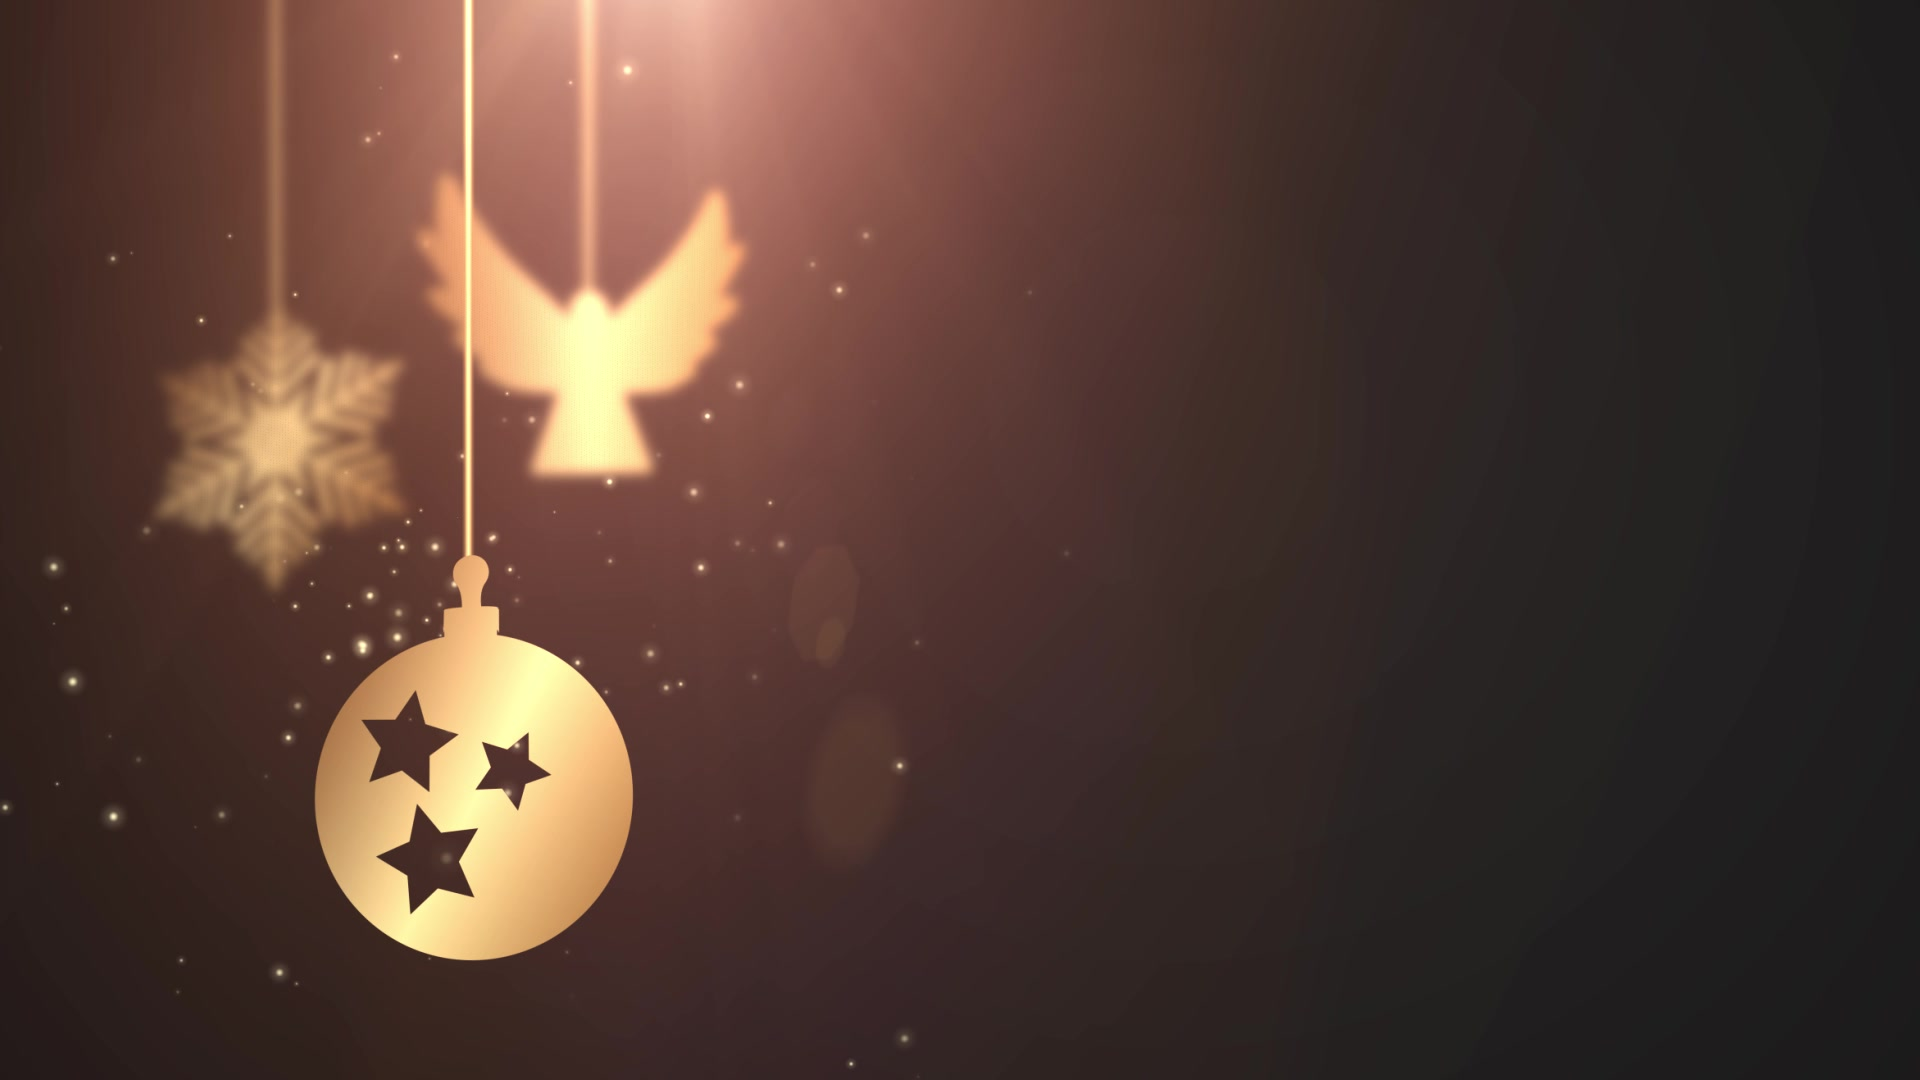 animated moving bauble ball falling down christmas new year festive seasonal celebration placeholder black background free hd video clips stock video